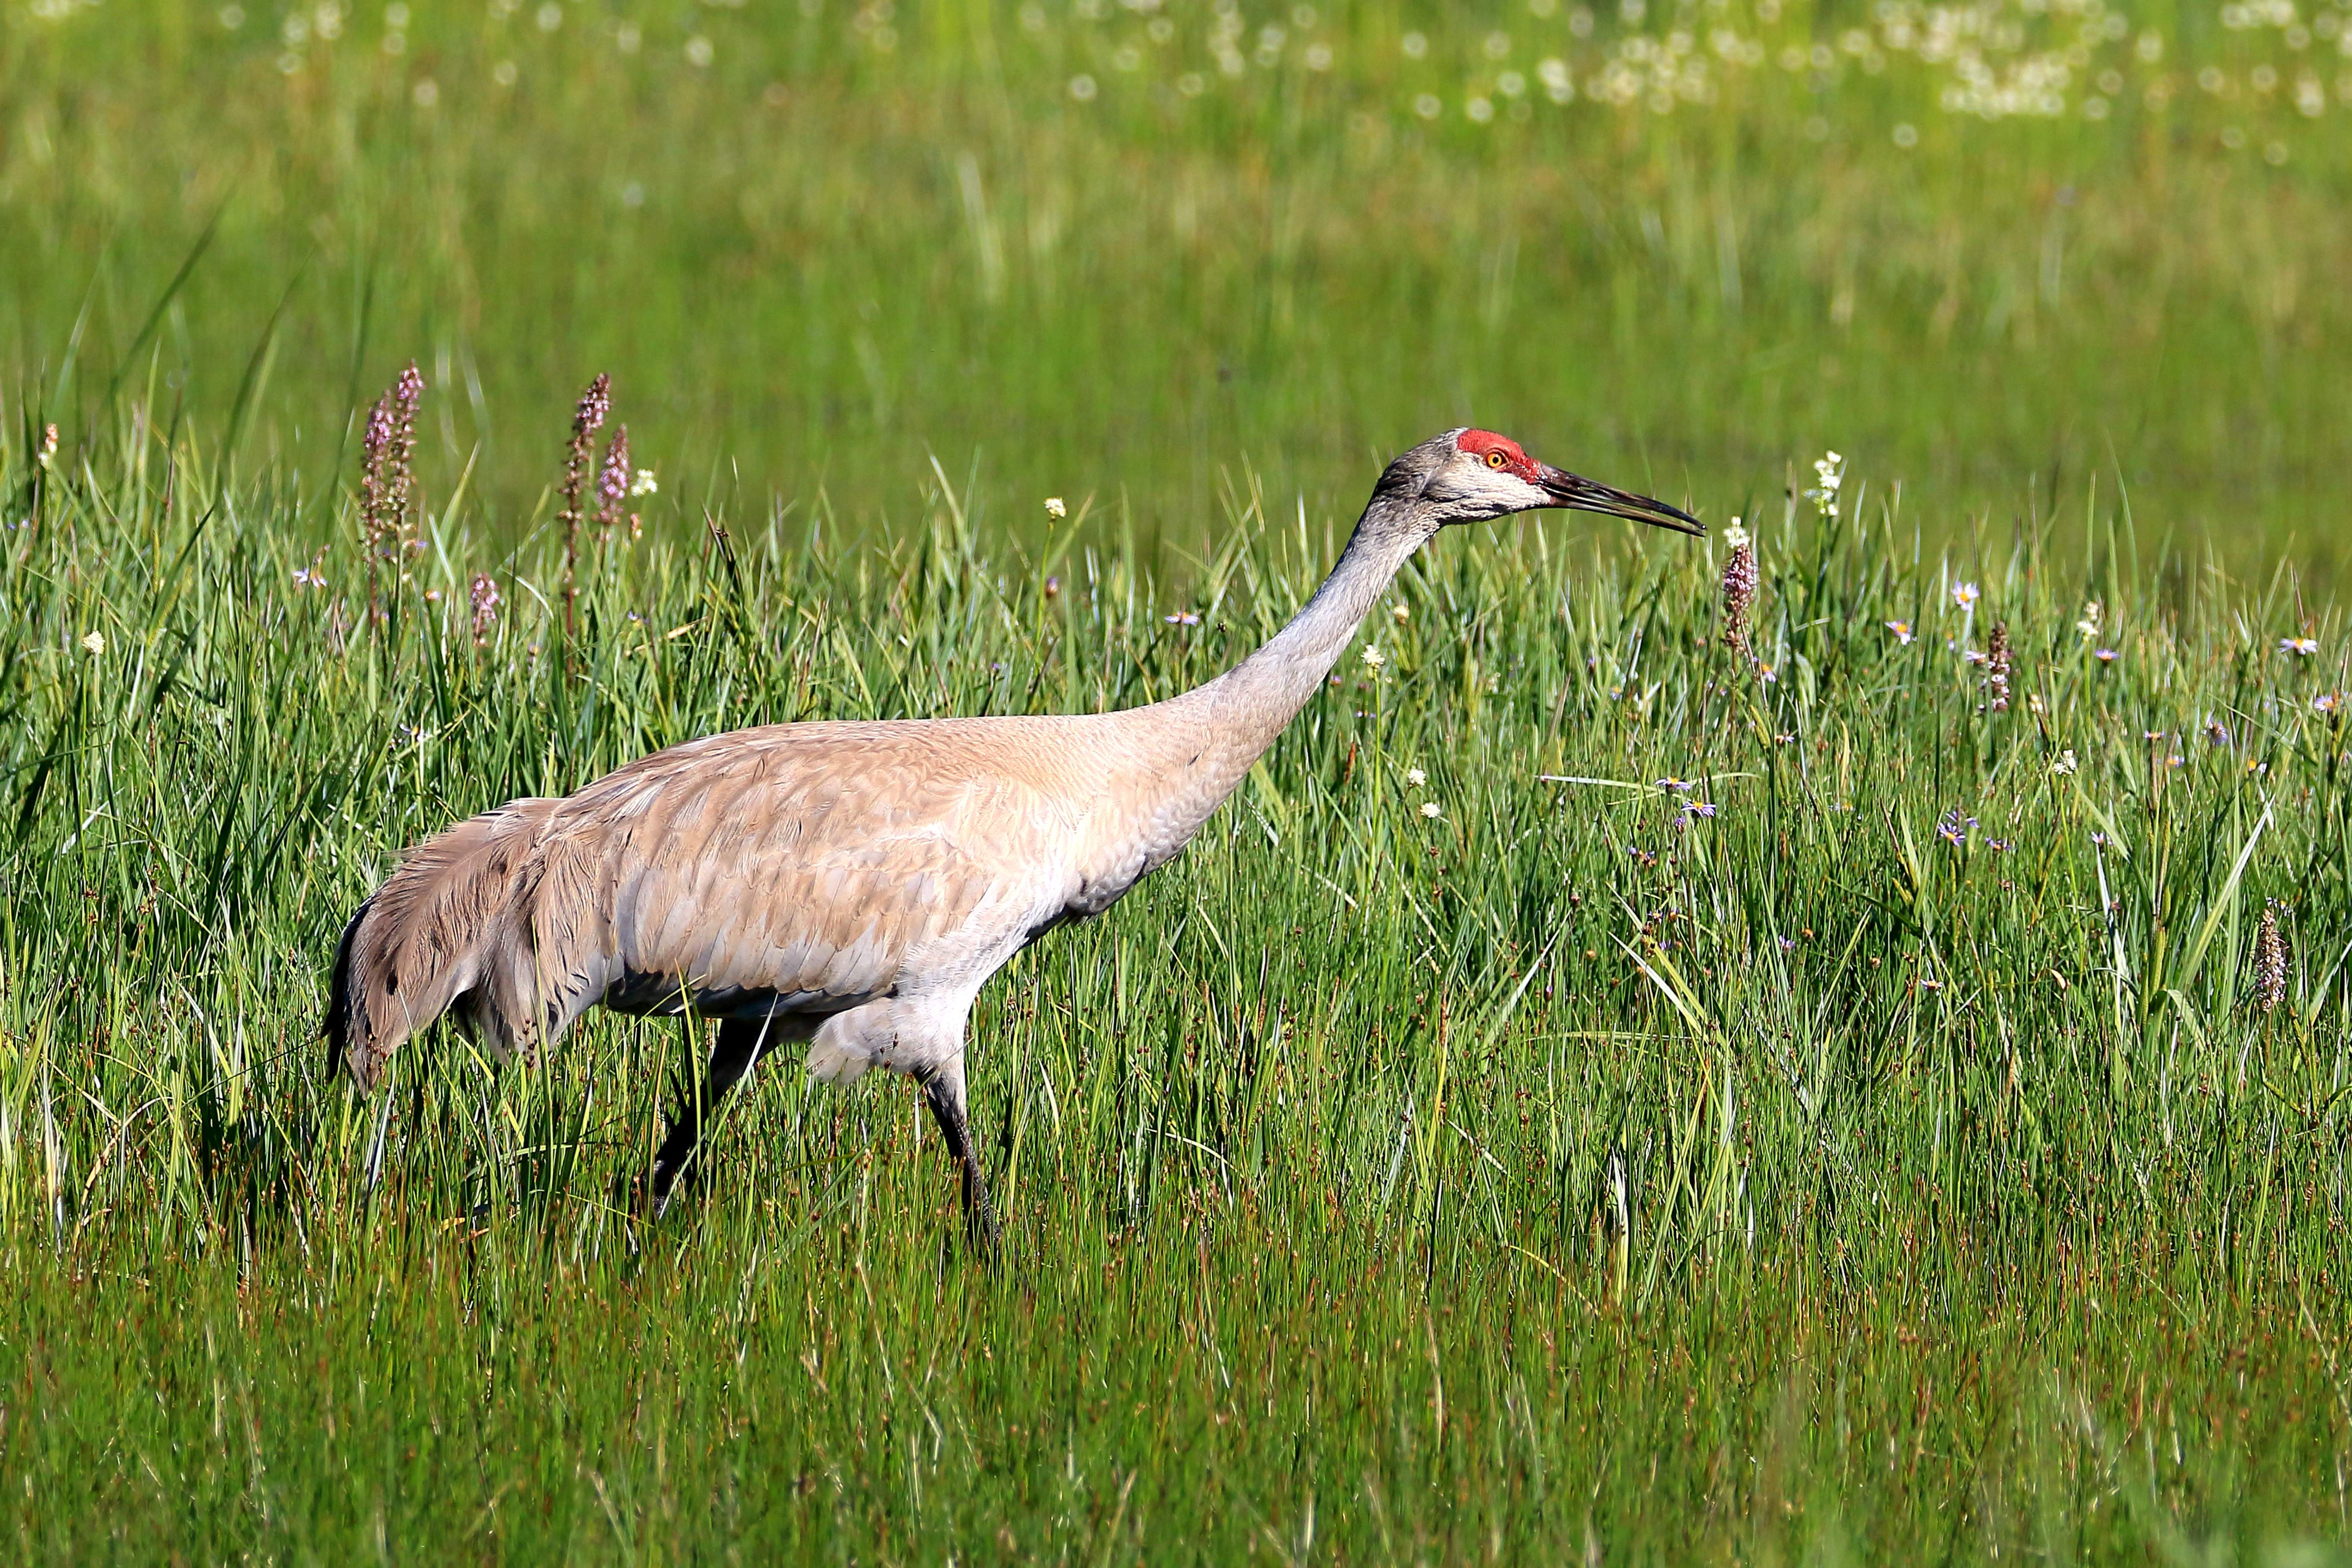 Sandhill crane at at Four Mile Lake. - Photo by Rick Shroy